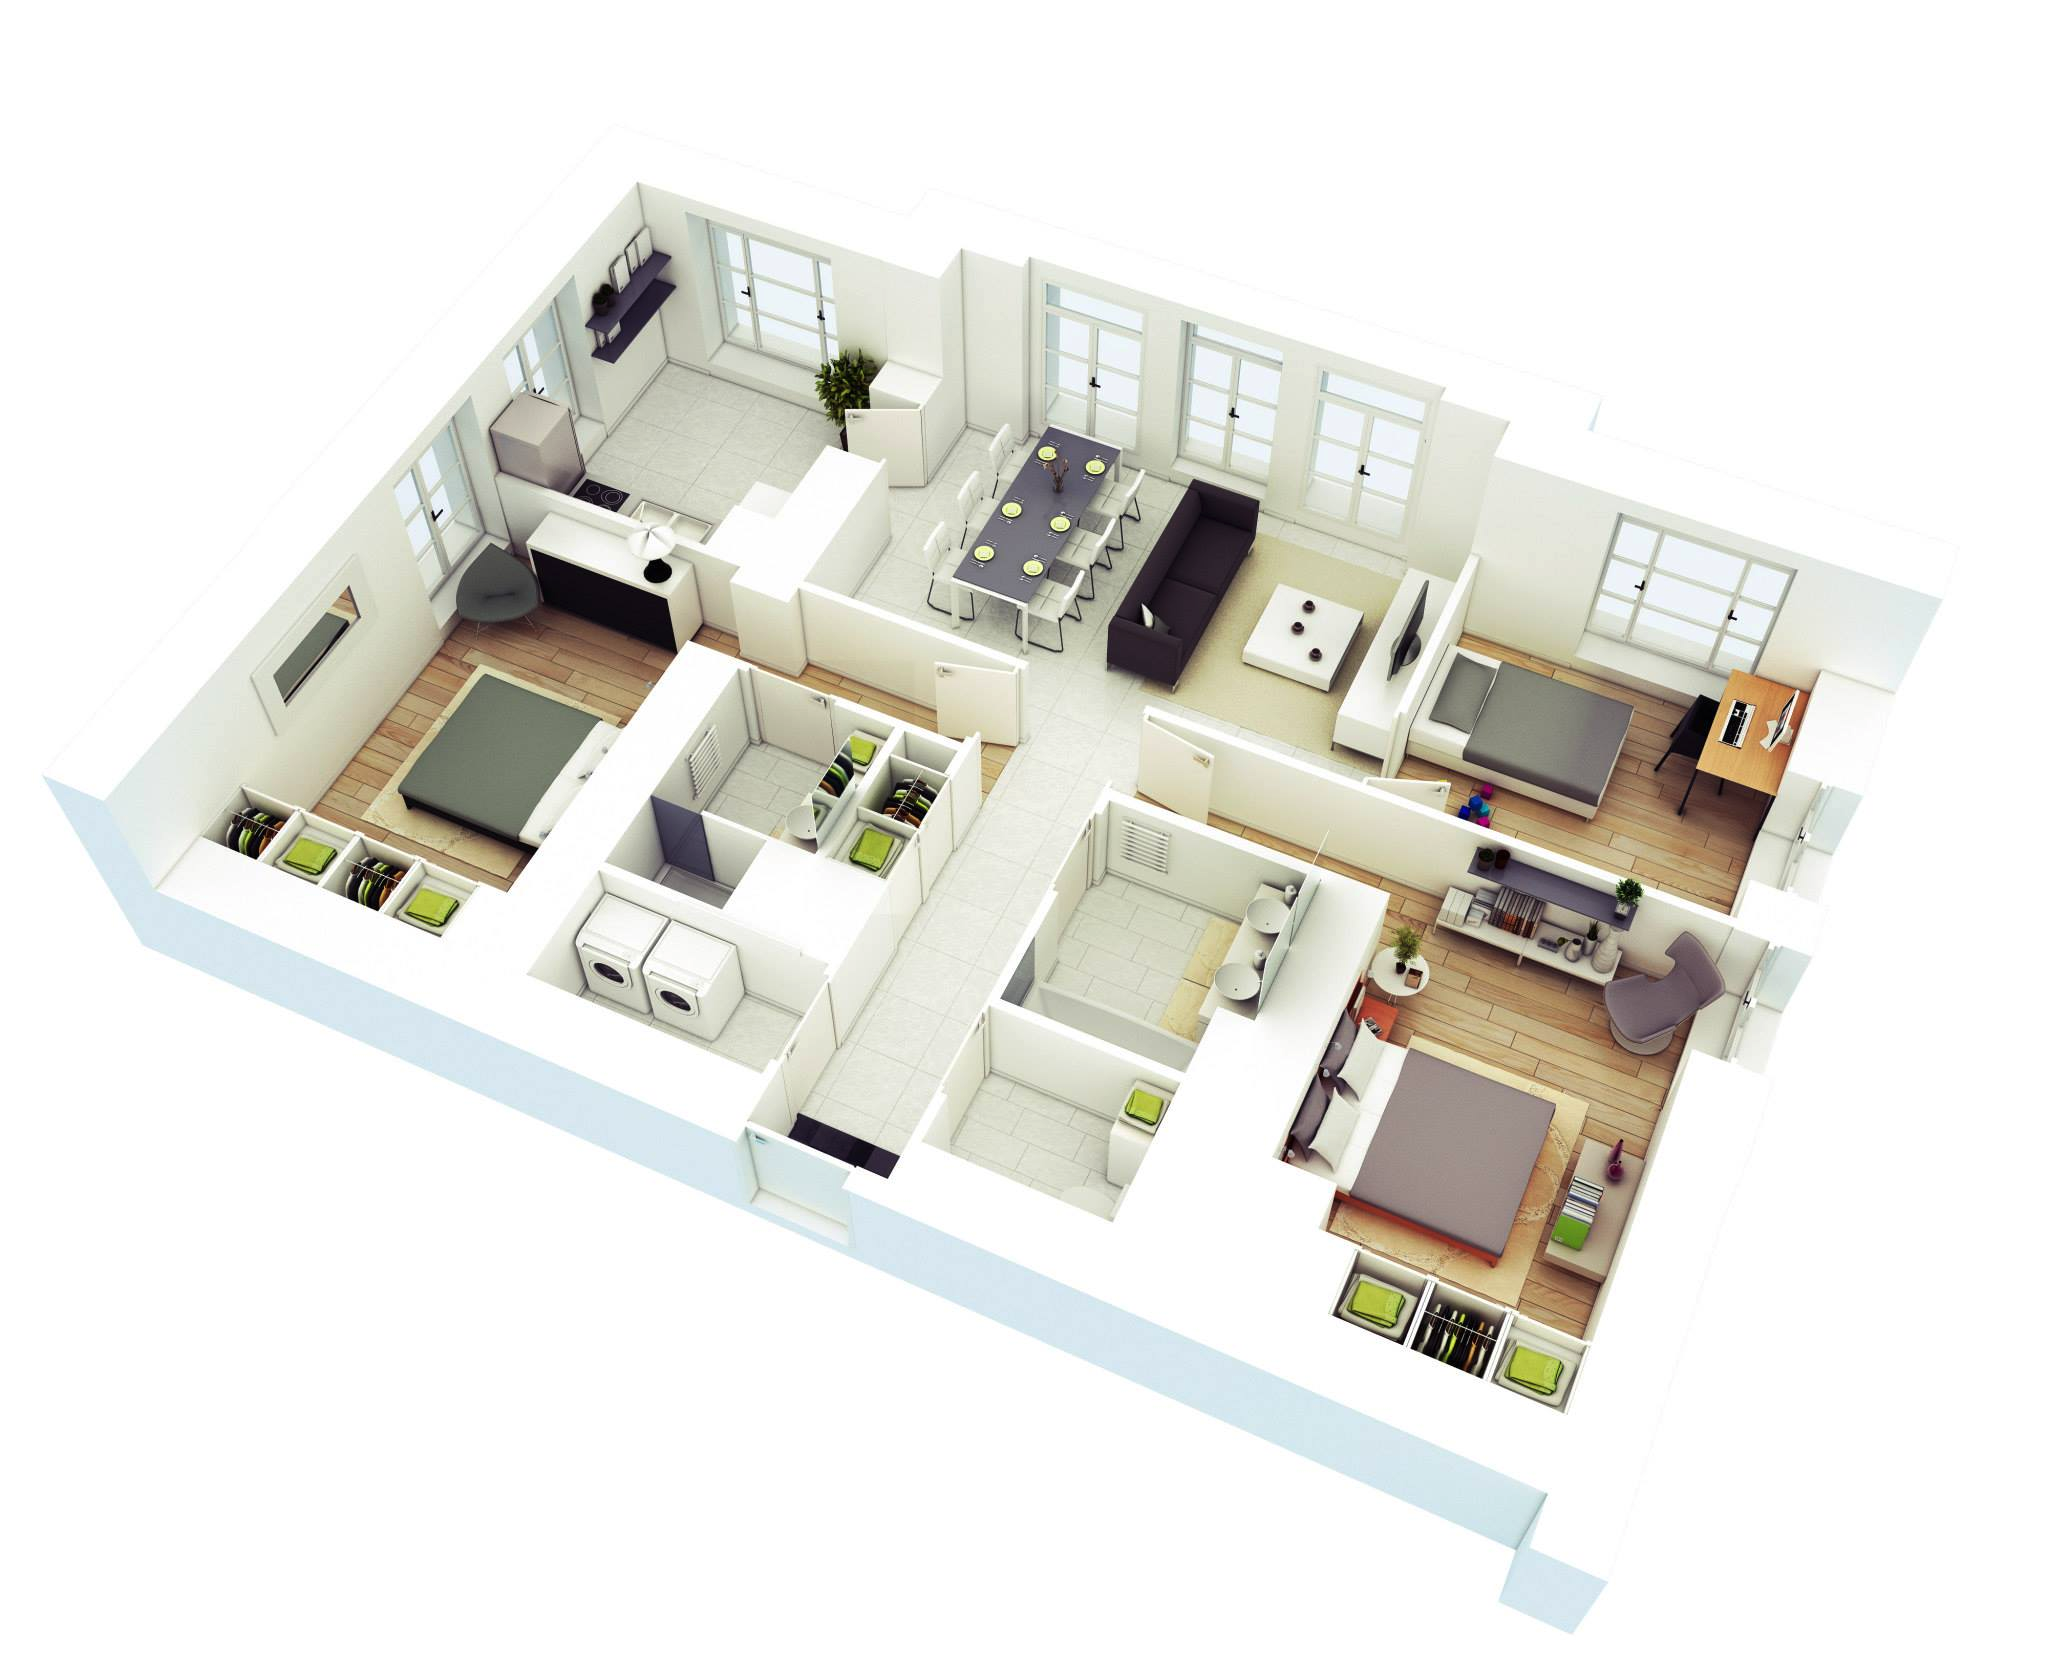 25 More 3 Bedroom 3D Floor Plans - Rutherford House 908 3162 3 Bedrooms And 2.5 Baths The House Designers